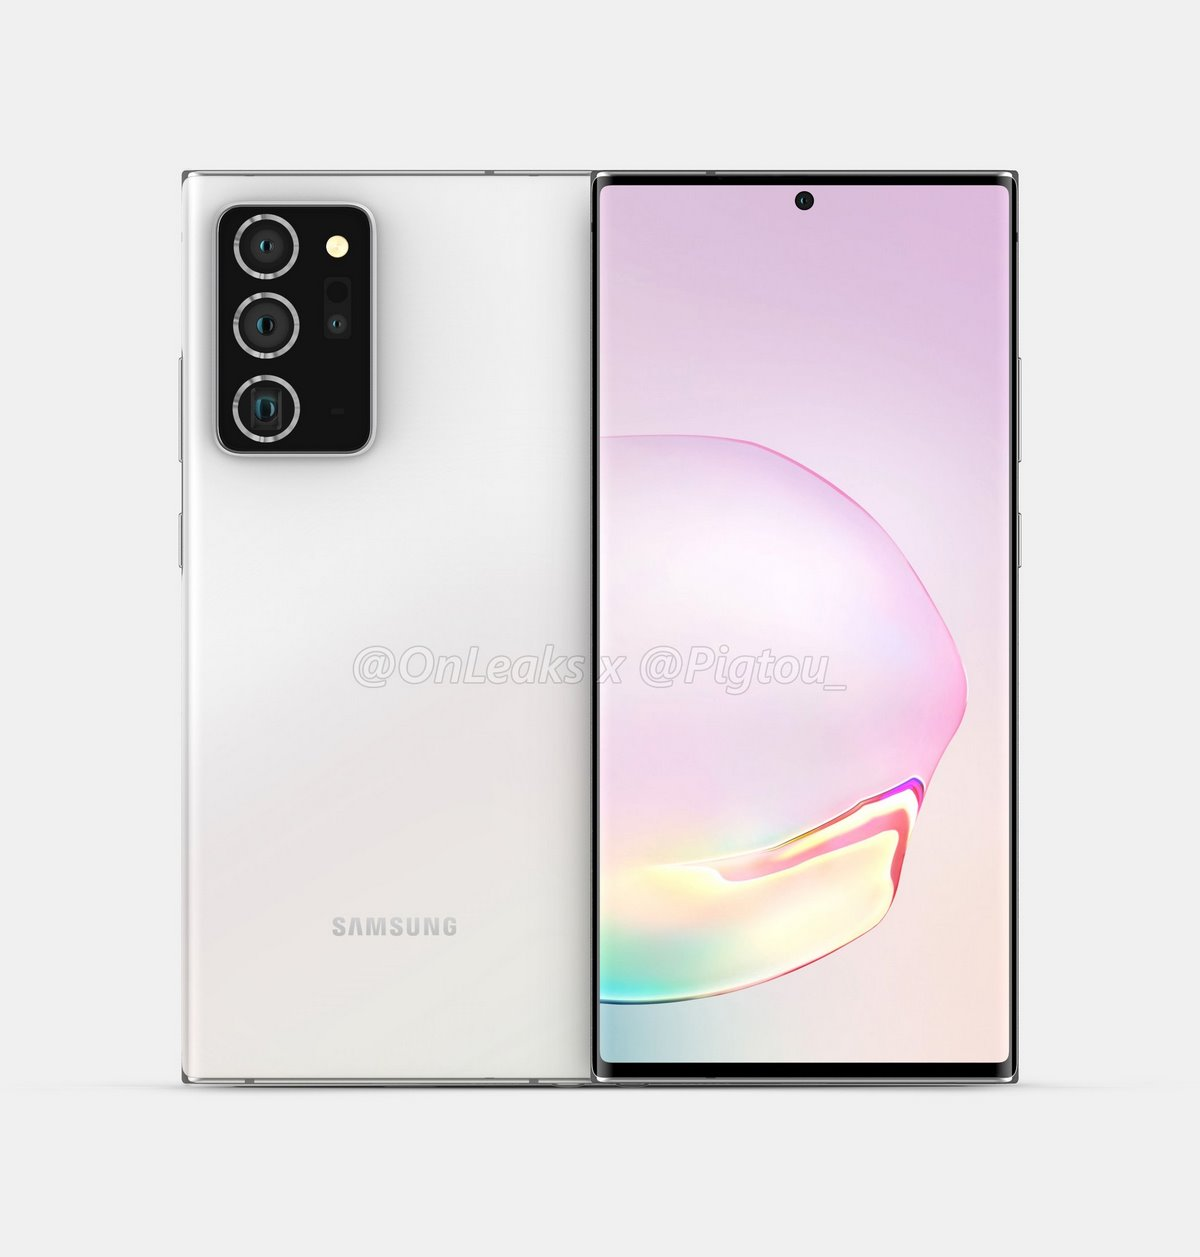 pantalla del <stro />Samsung</strong>® Galaxy Note 20″ width=»1200″ height=»1257″ srcset=»https://www.androidsis.com/wp-content/uploads/2020/05/diseño-del-samsung-galaxy-note-20-3.jpg 1200w, <a target=